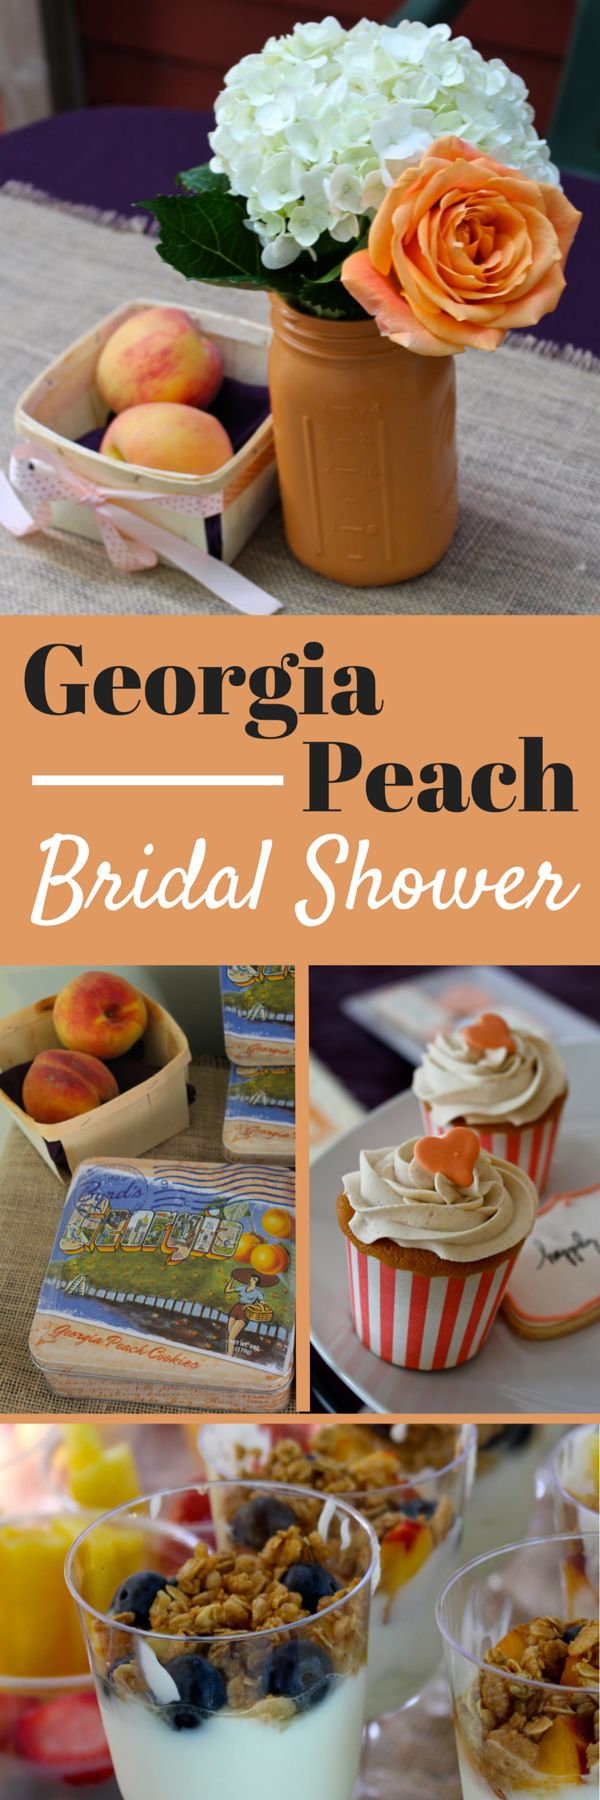 Georgia Peach Bridal Shower. Great ideas for wedding showers or really any type of party.